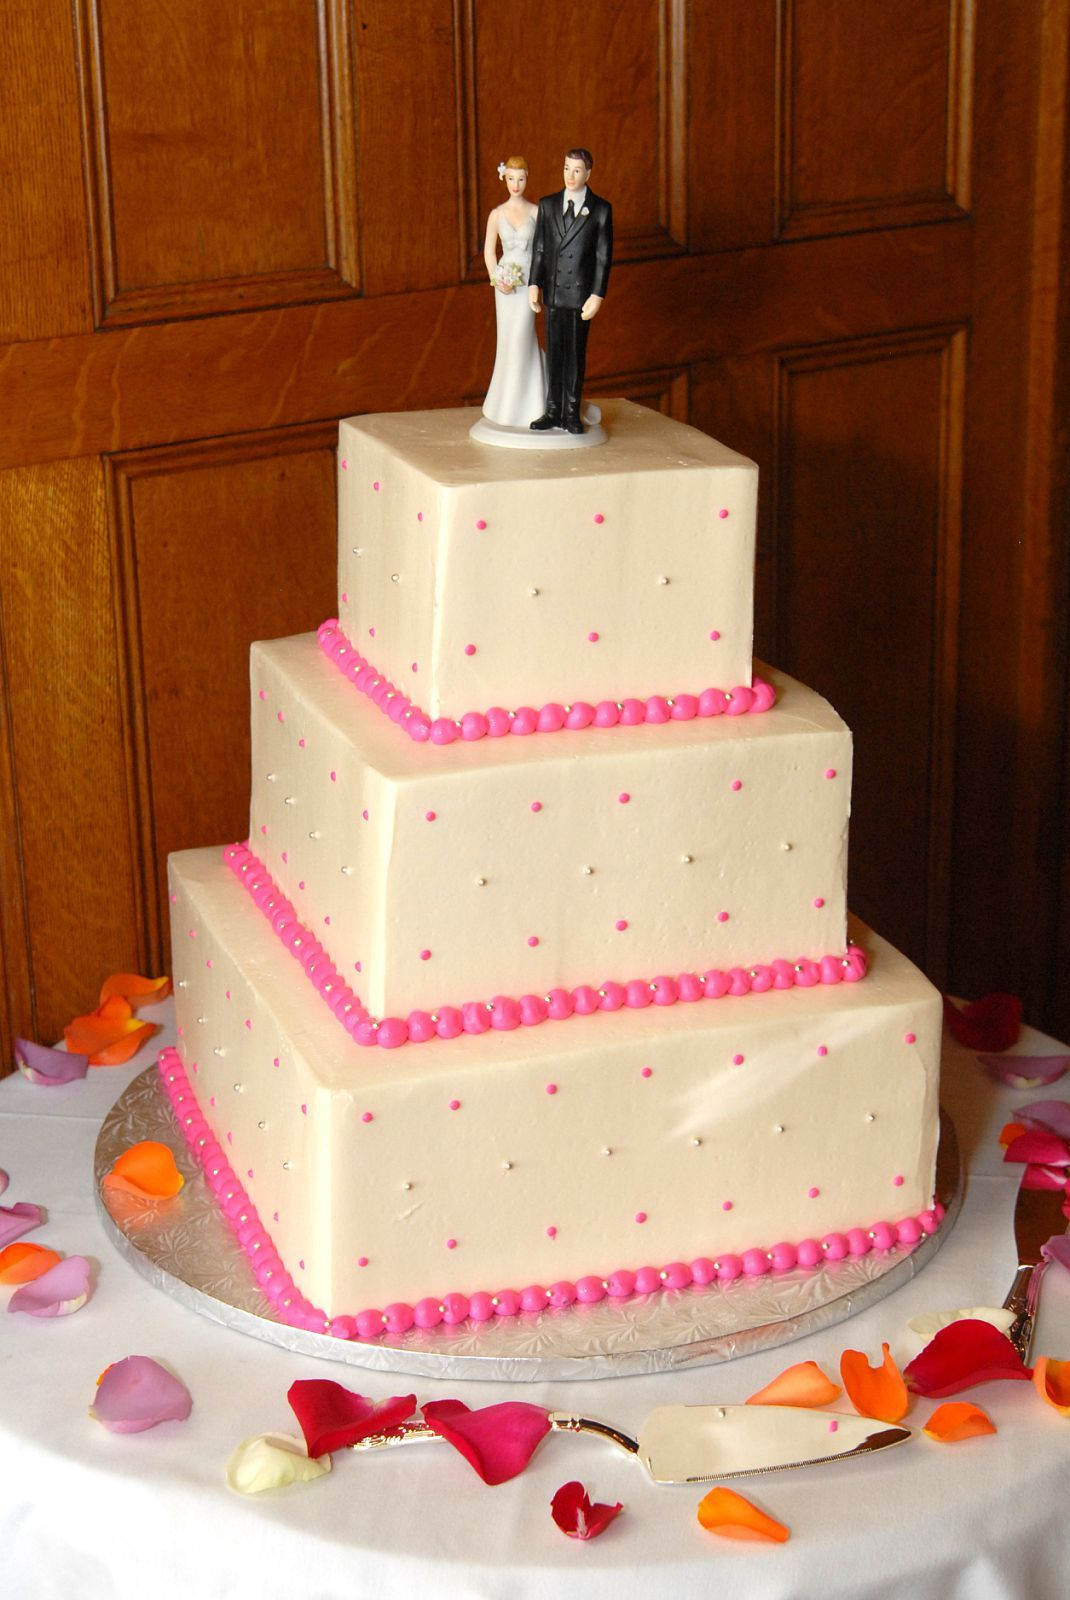 Inspiration, Reception, Flowers & Decor, Cakes, white, pink, silver, cake, Board